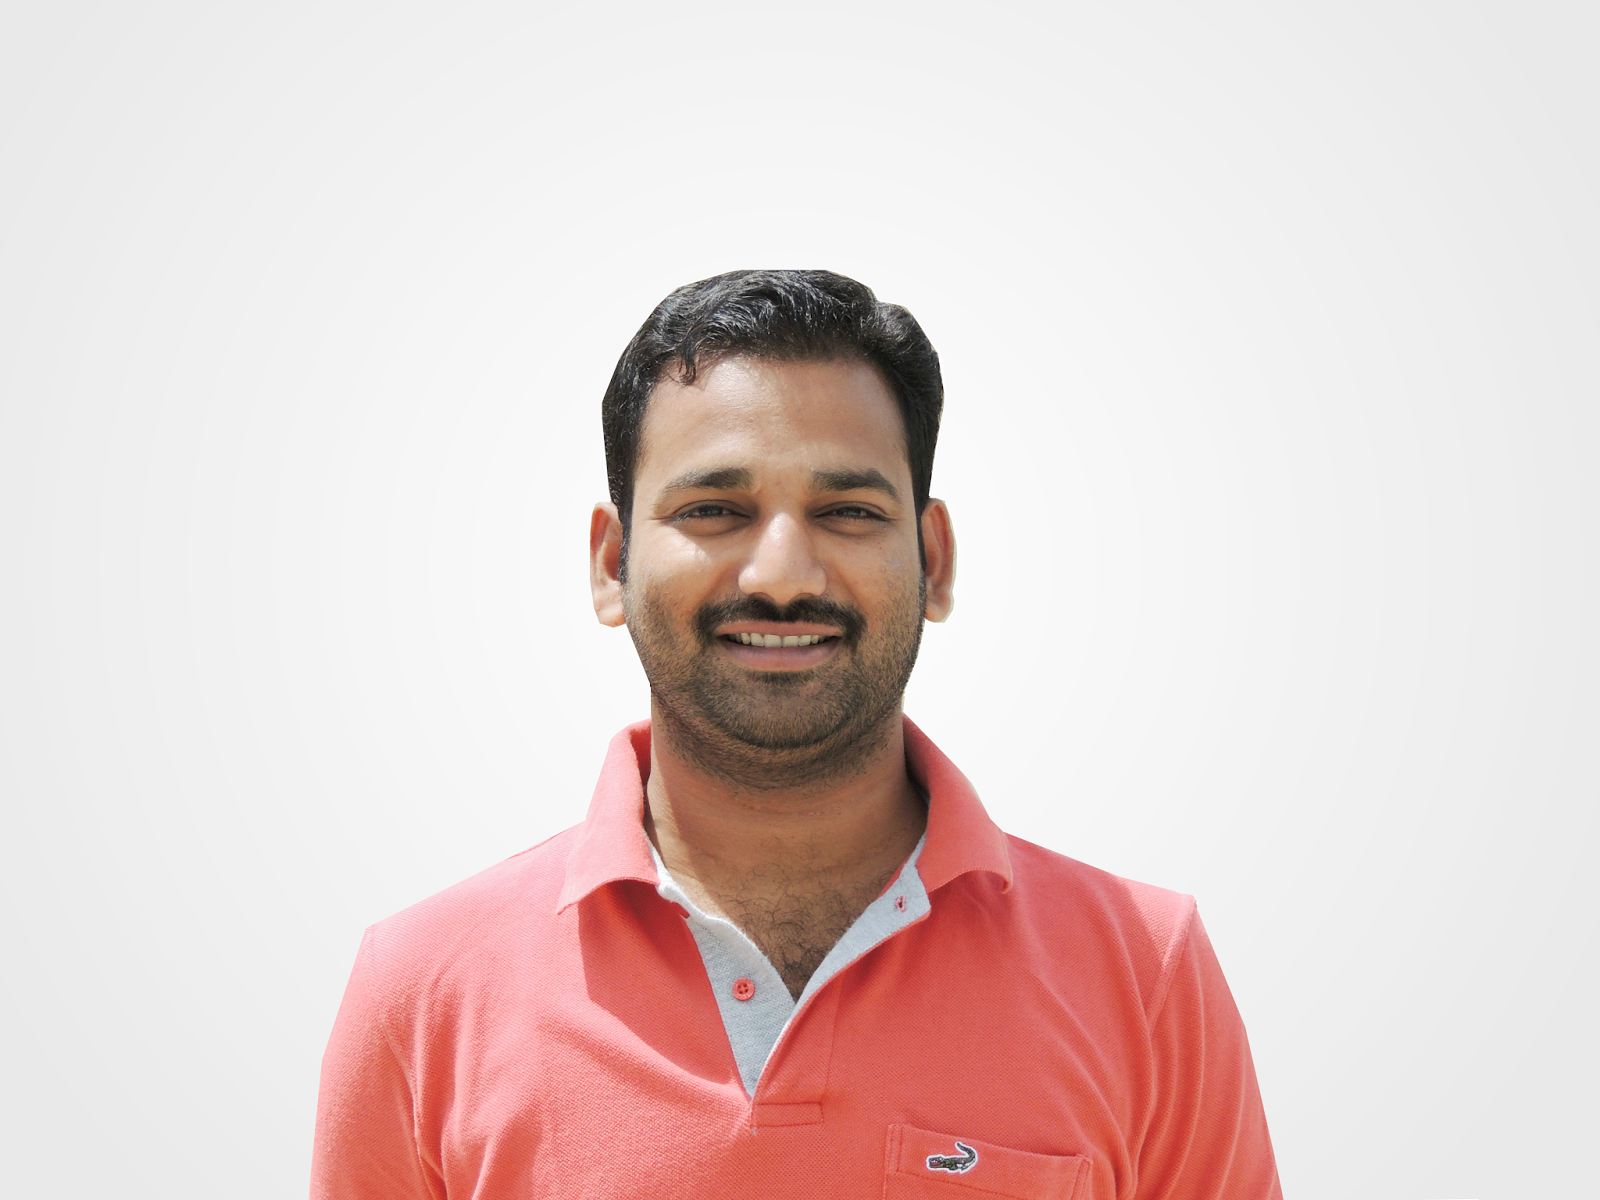 Pradeep Kumar Guduru Profile Photo